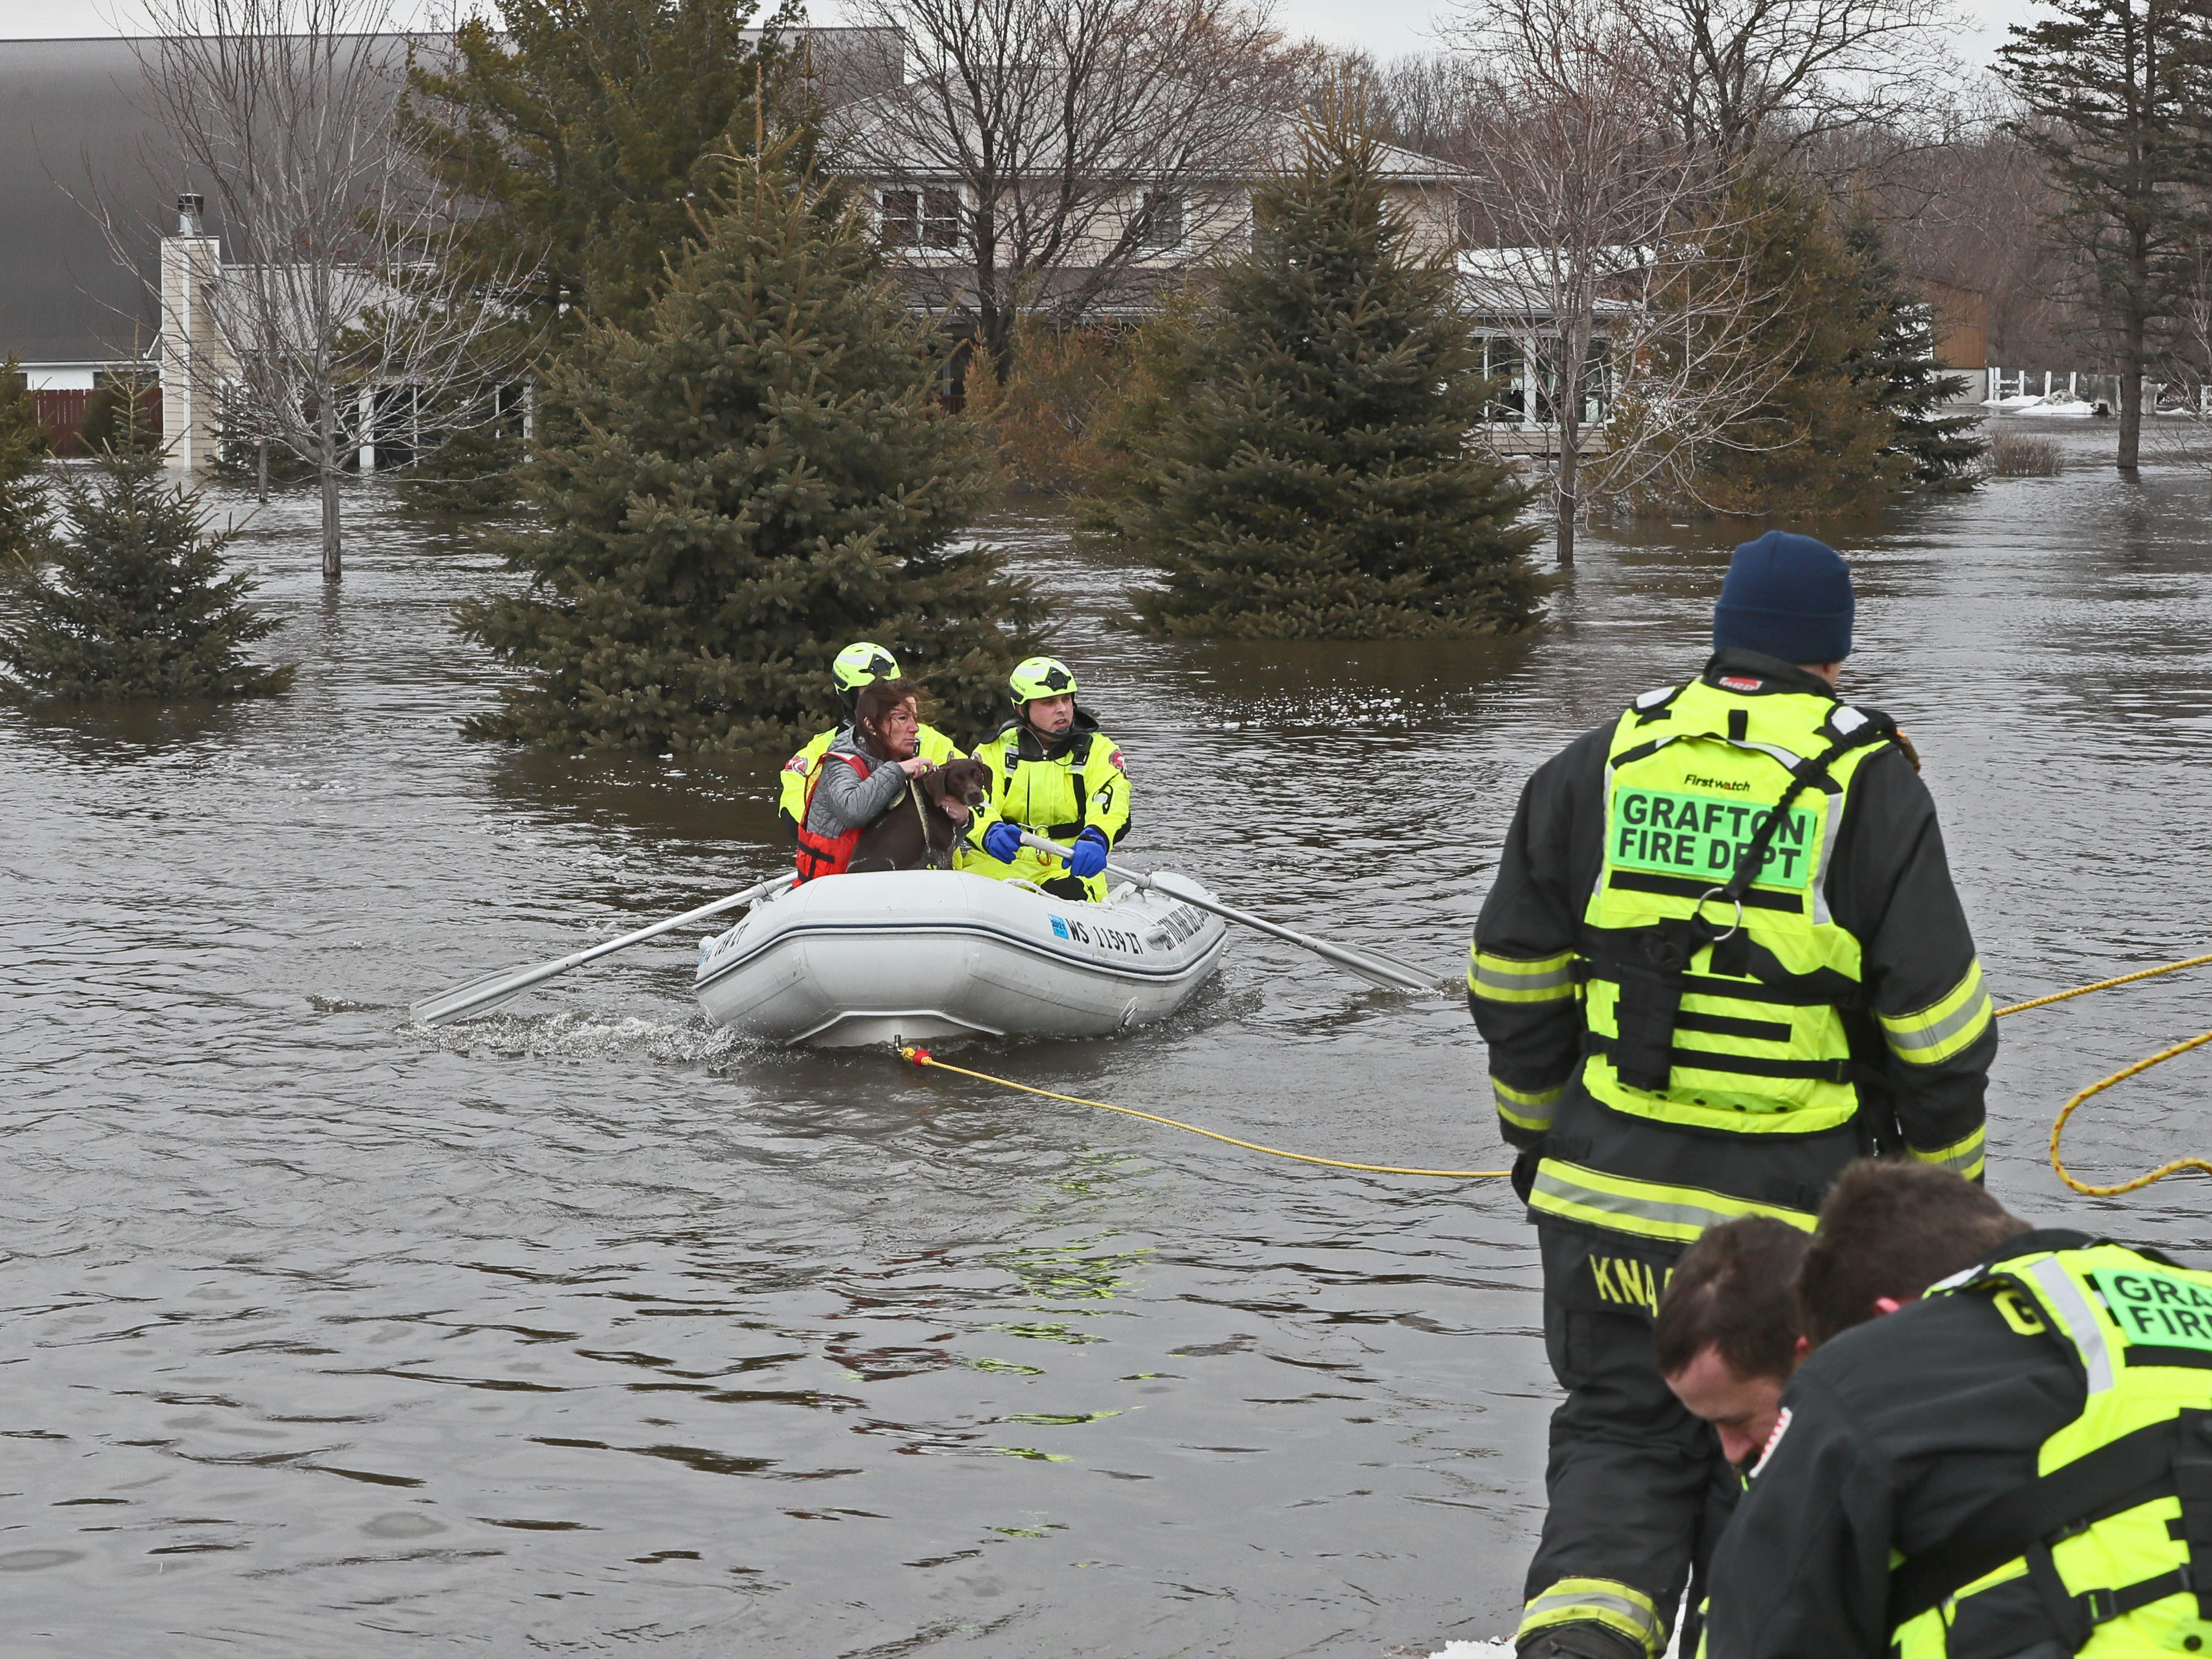 A woman and her dog are rescued from the home at rear. March 15, 2019 Grafton firefighters rescued two people from the Riverview Kennel on the Milwaukee River at  1584 Pioneer Rd in Cedarburg.  Ice going out on the river was blocked by bridge diverting flow over the Cty Highway C and the surround low areas.